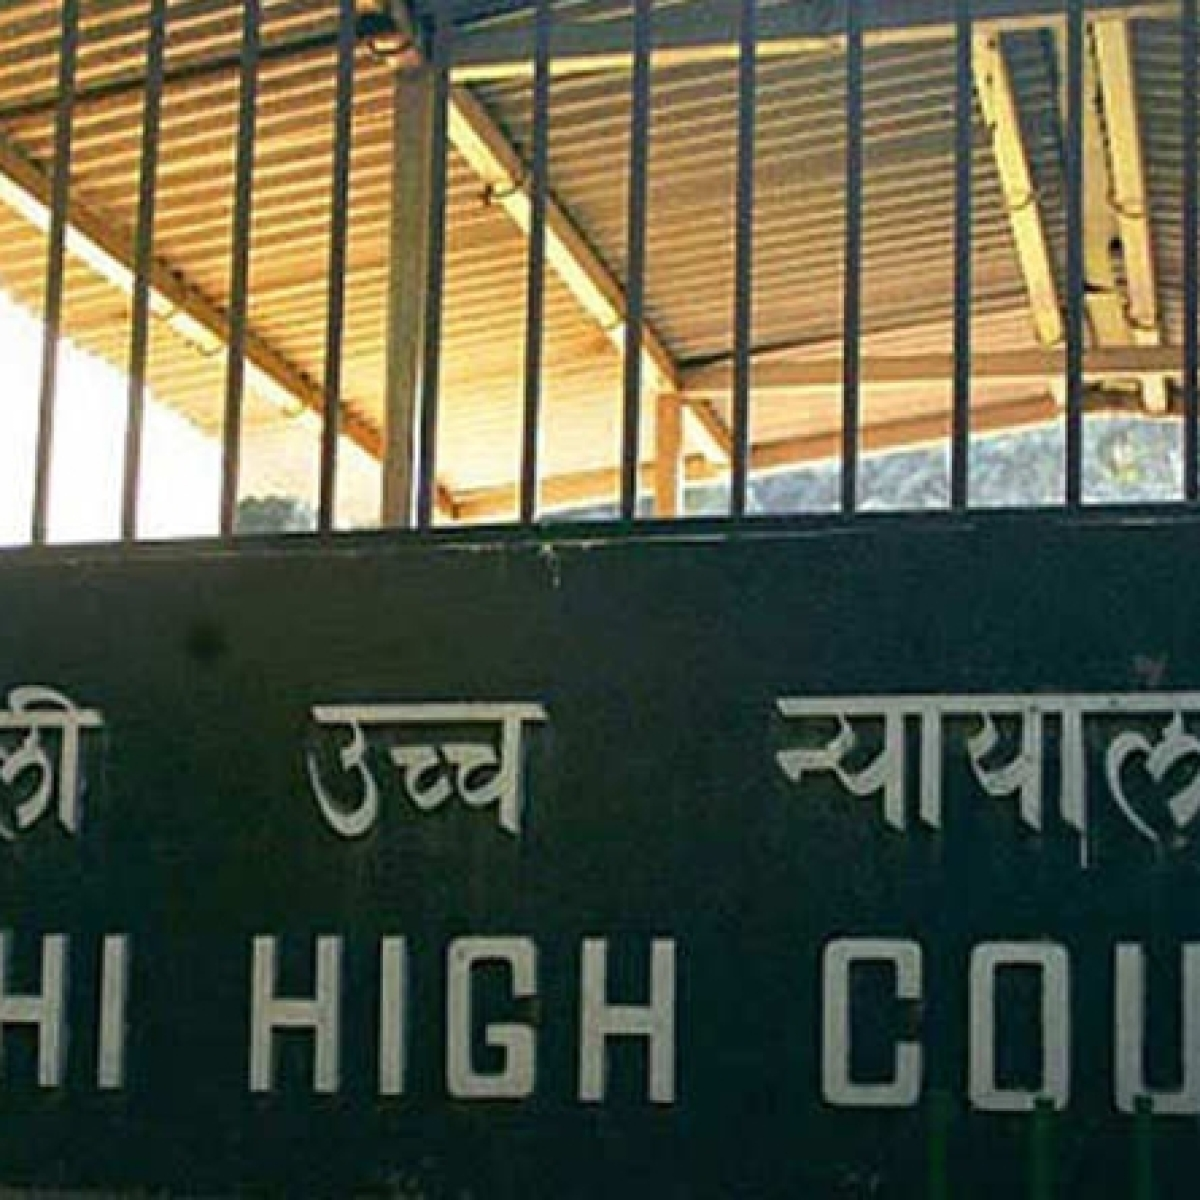 Amid rise in COVID-19 cases, Delhi HC orders district courts to take up only urgent matters via video conference